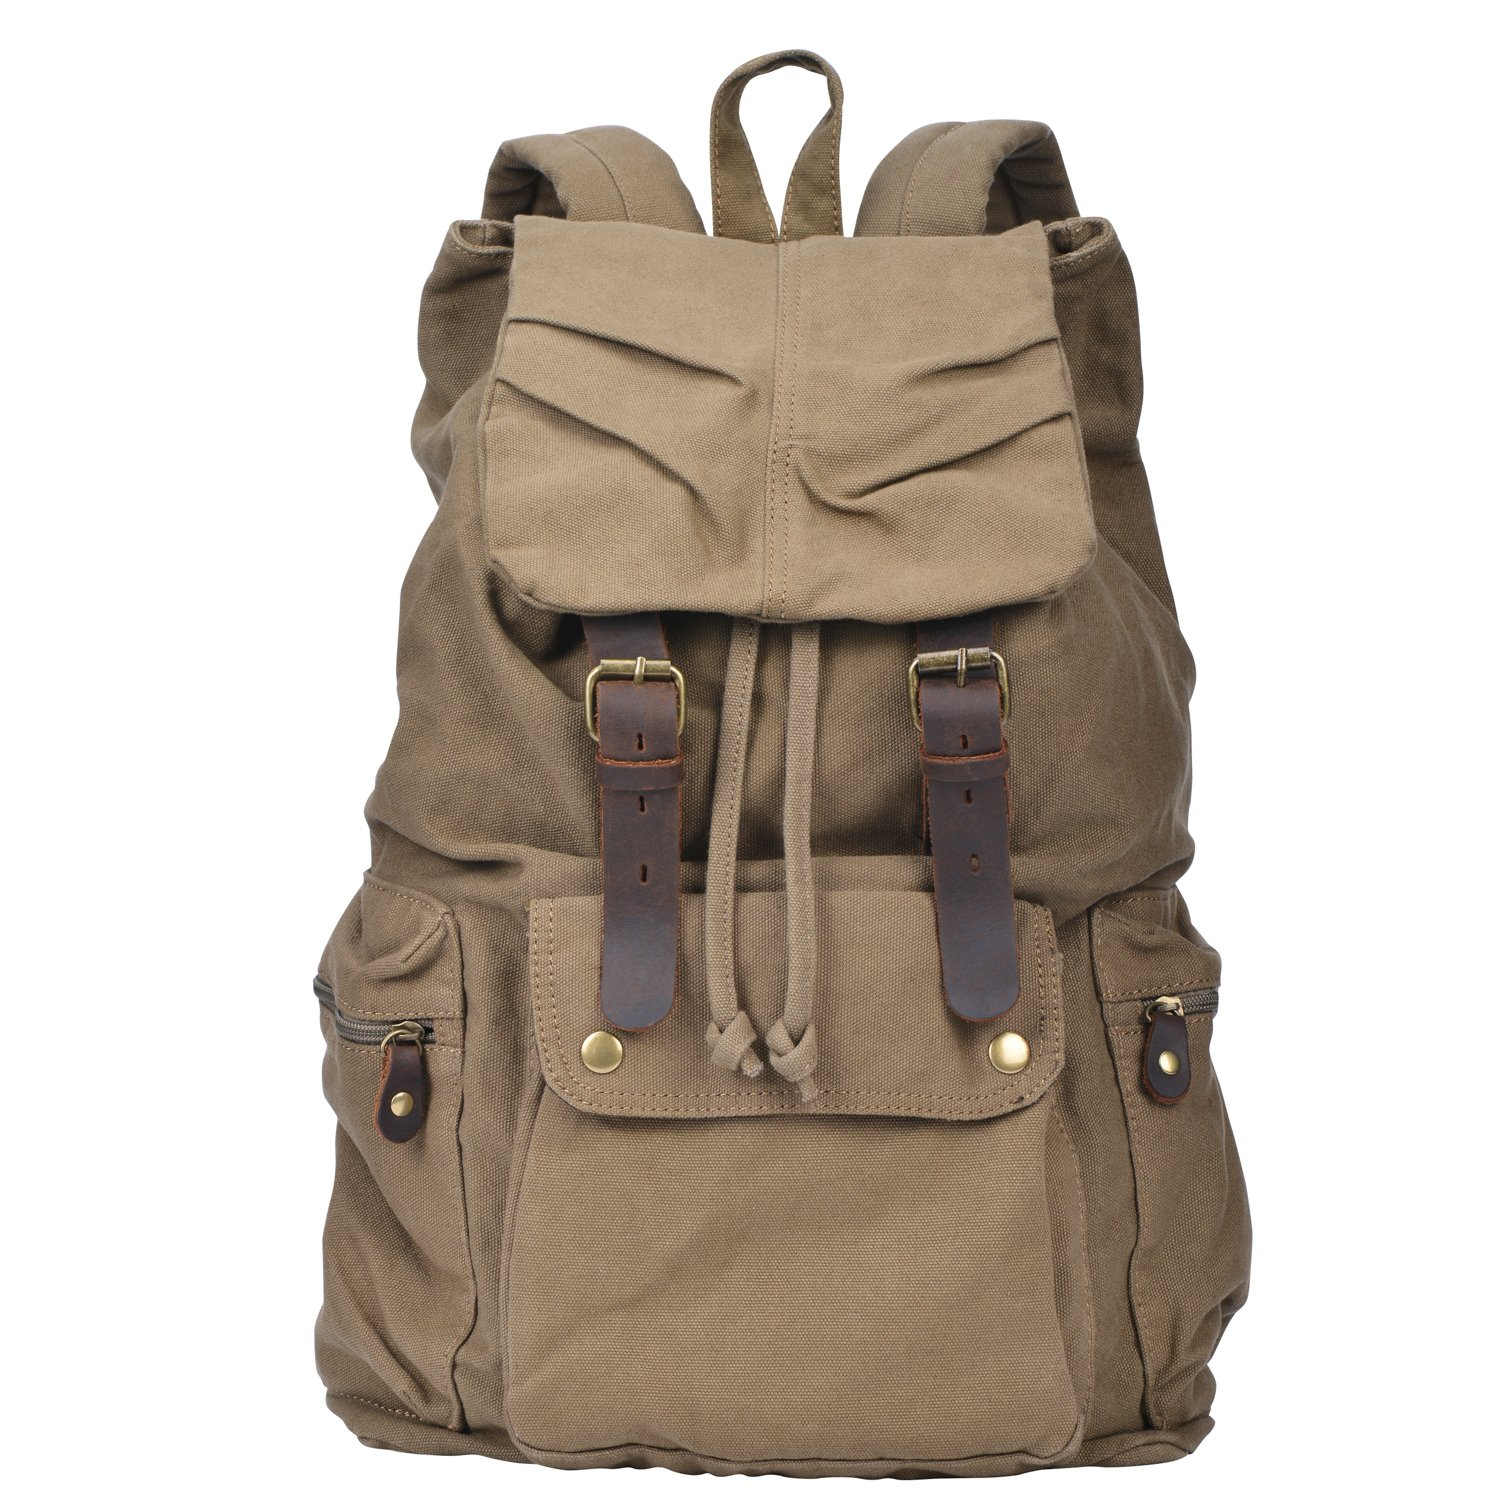 S.C.Cotton Canvas Leather Backpack Rucksack Satchel Bookbag Hiking Bag - Army Green 1769551031